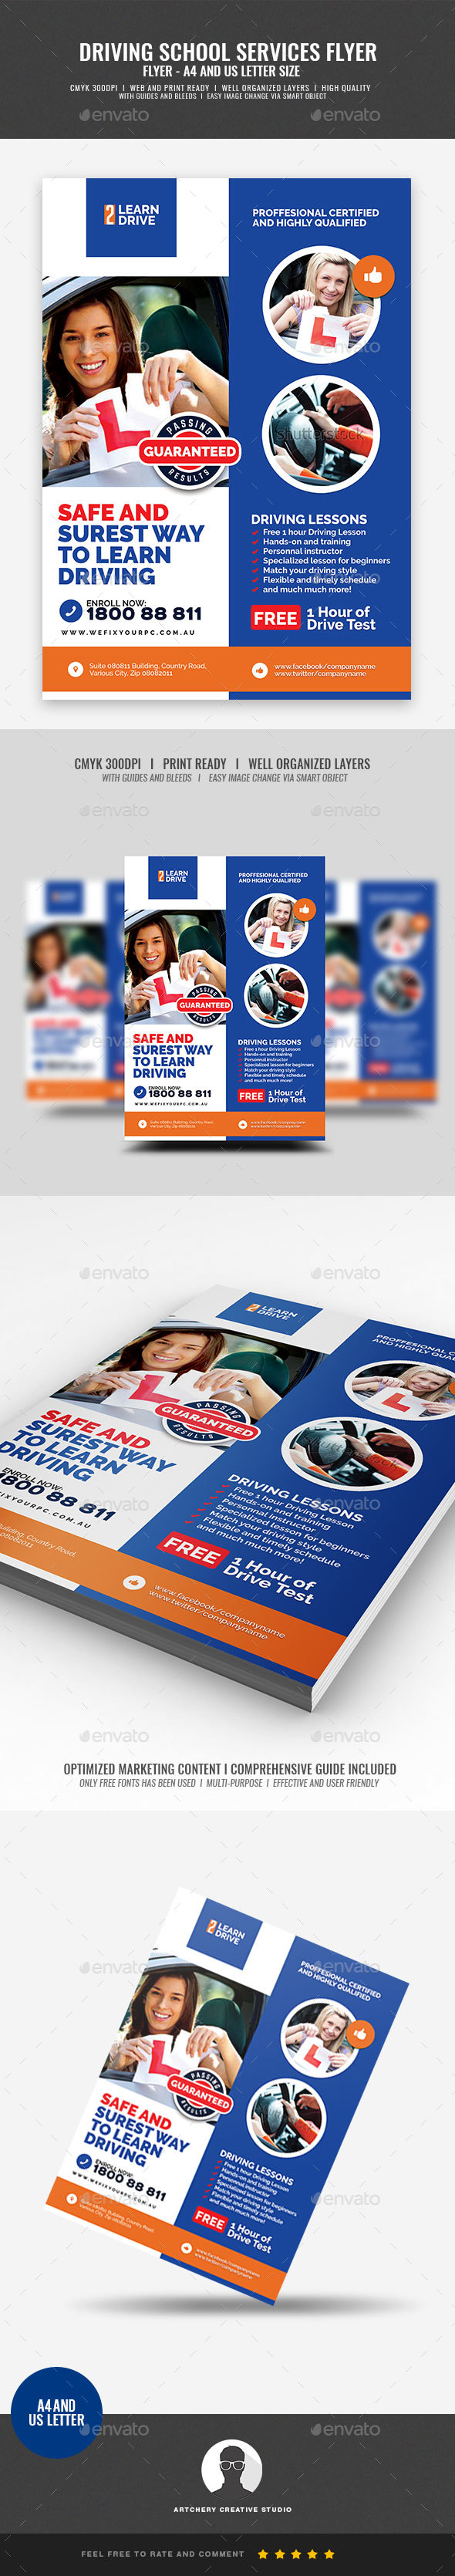 Driving School Promotional Flyer - Corporate Flyers